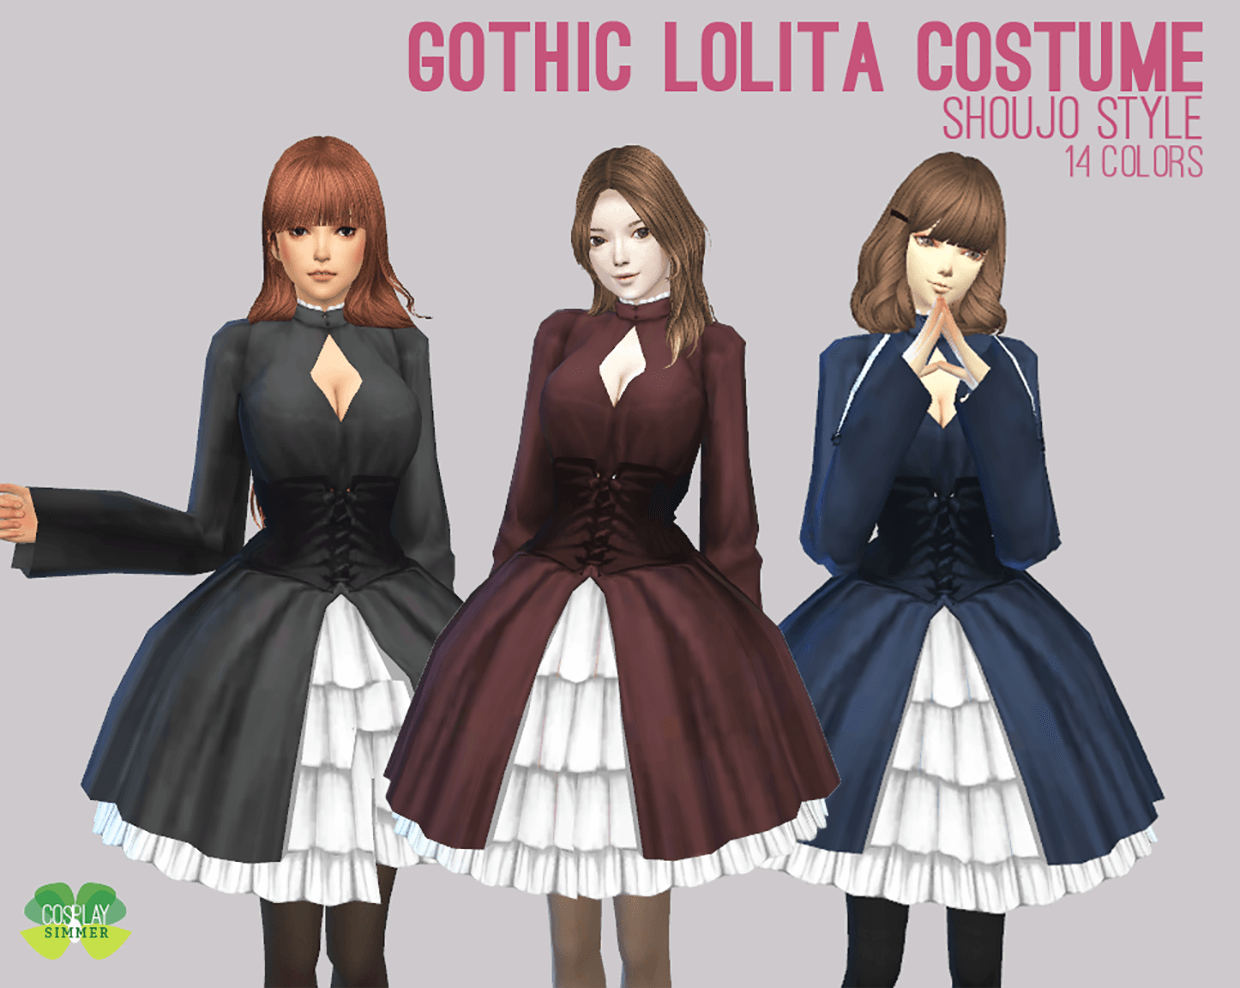 Gothic Lolita Costume by Cosplay Simmer